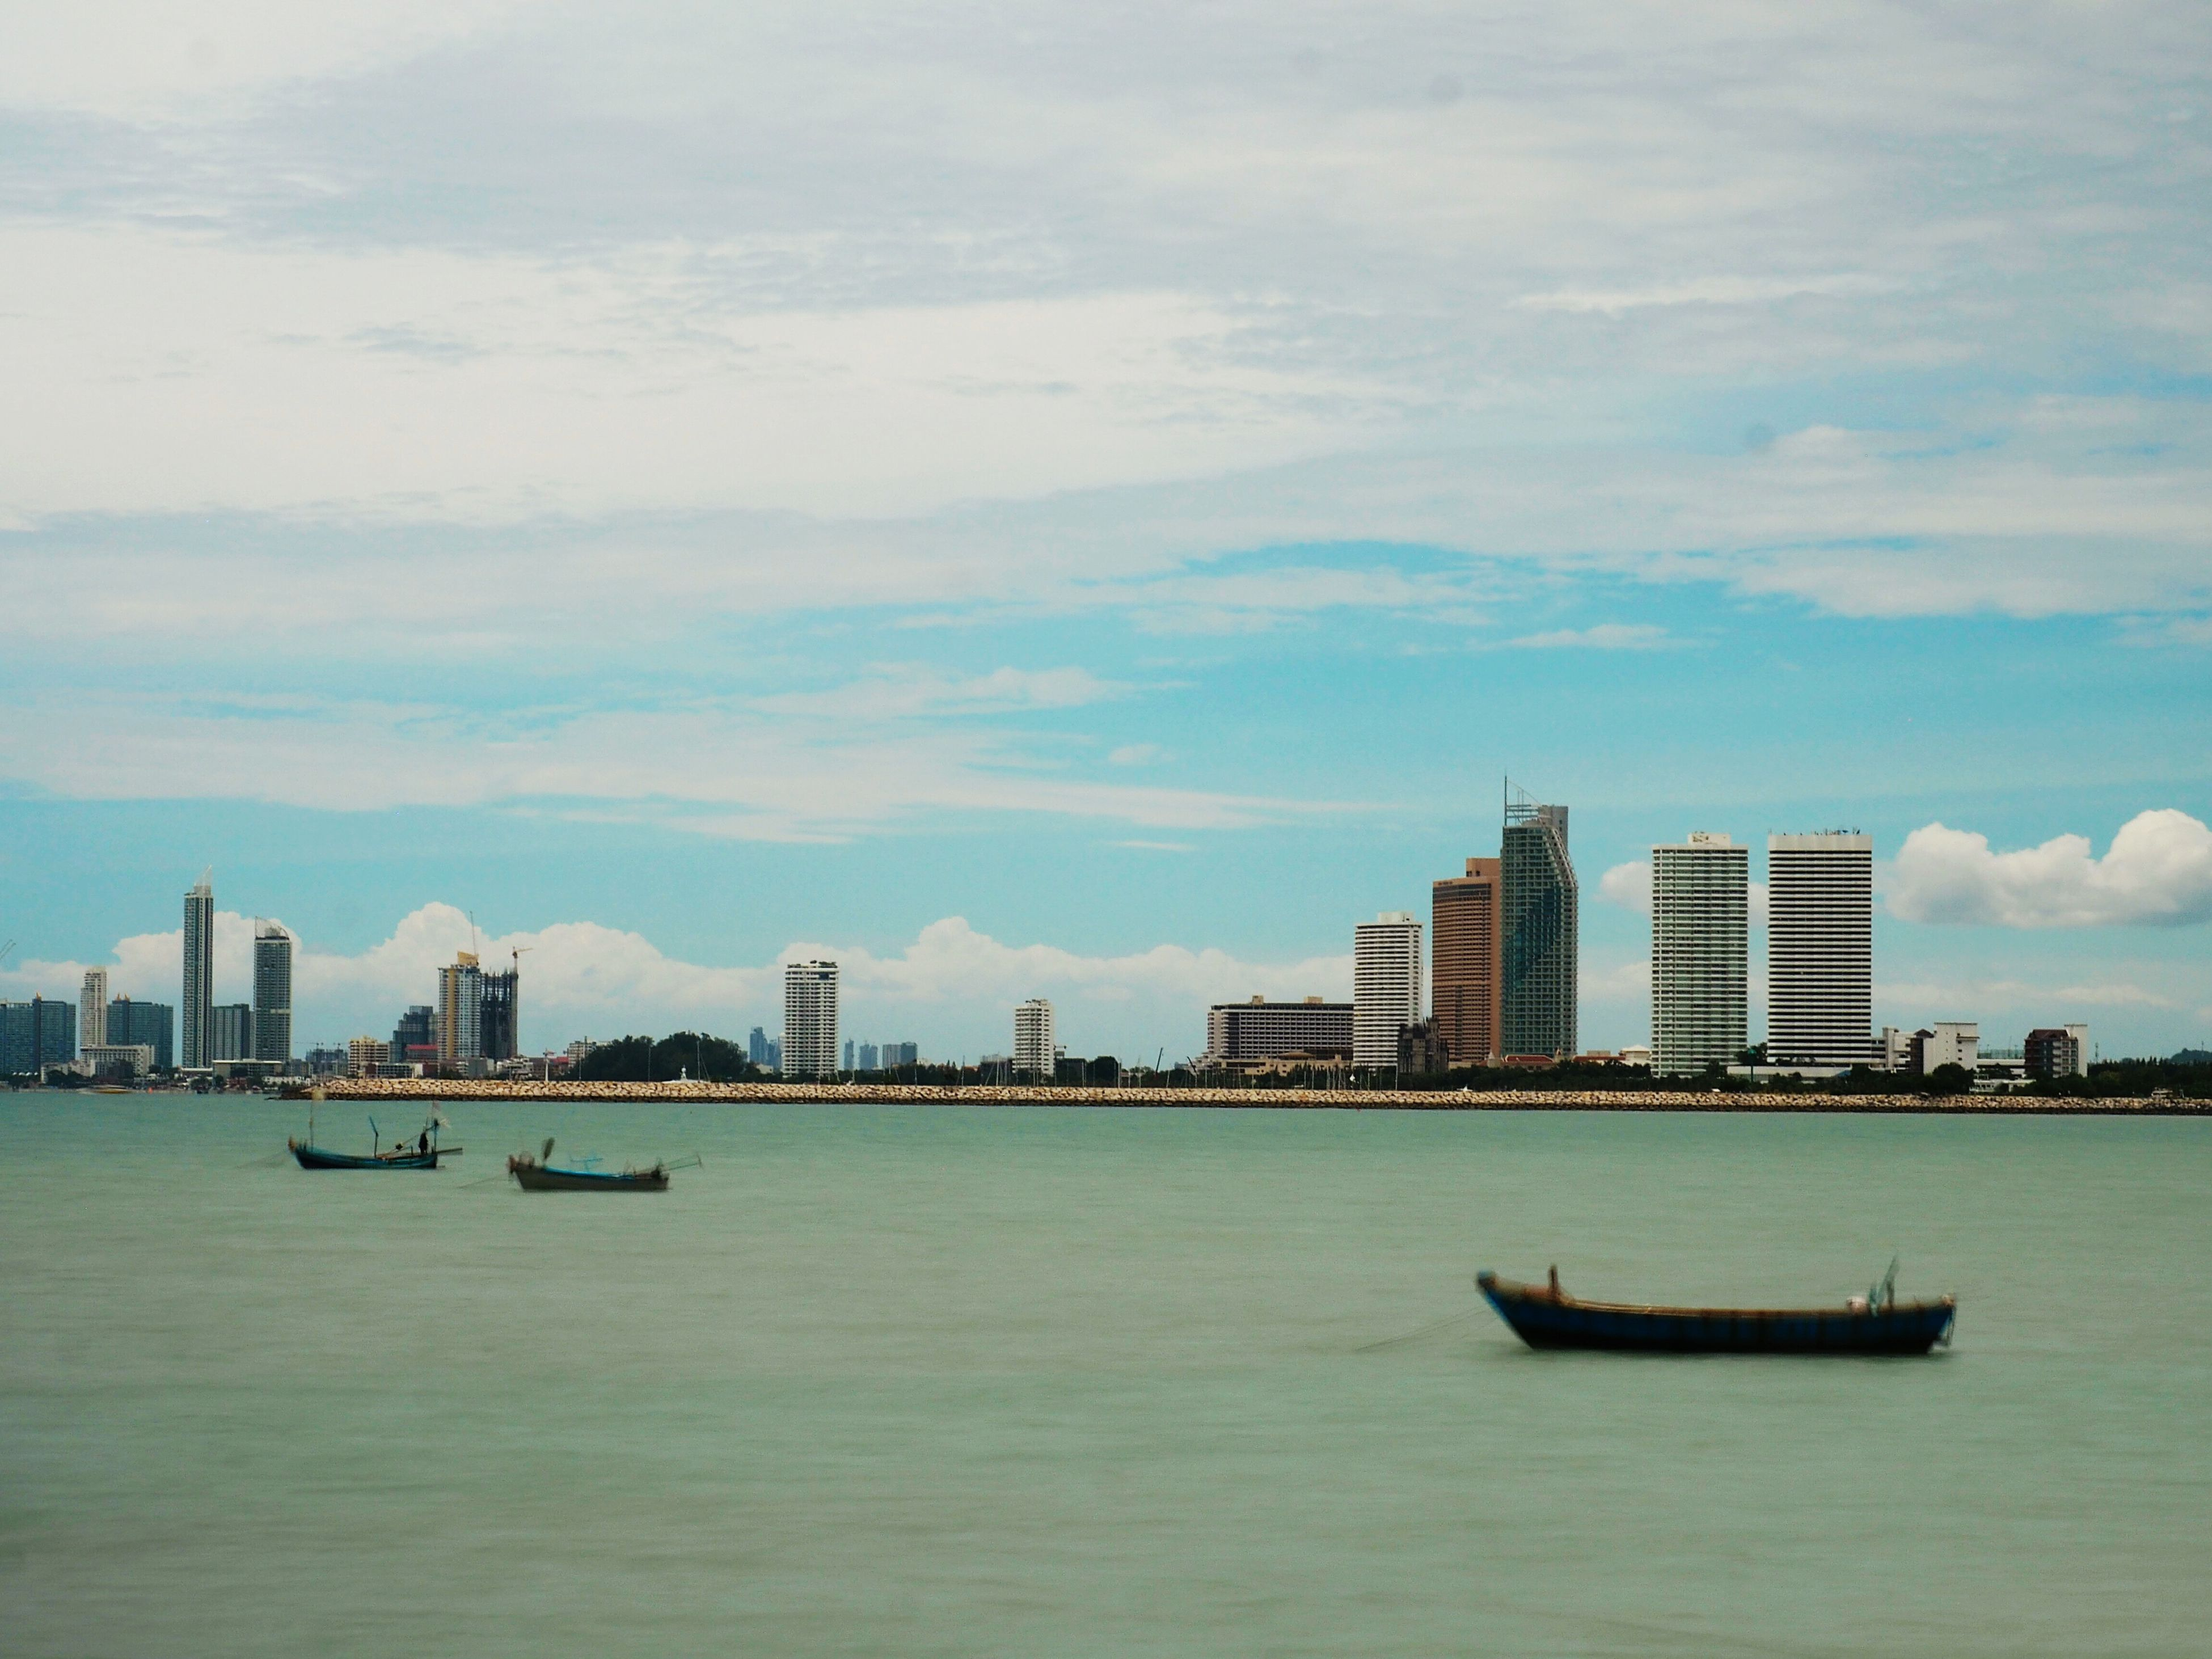 waterfront, architecture, water, built structure, nautical vessel, sky, city, boat, river, cloud - sky, cityscape, urban skyline, cloud, mid distance, day, rippled, outdoors, ship, no people, nature, tall - high, cloudy, travel destinations, tranquility, blue, development